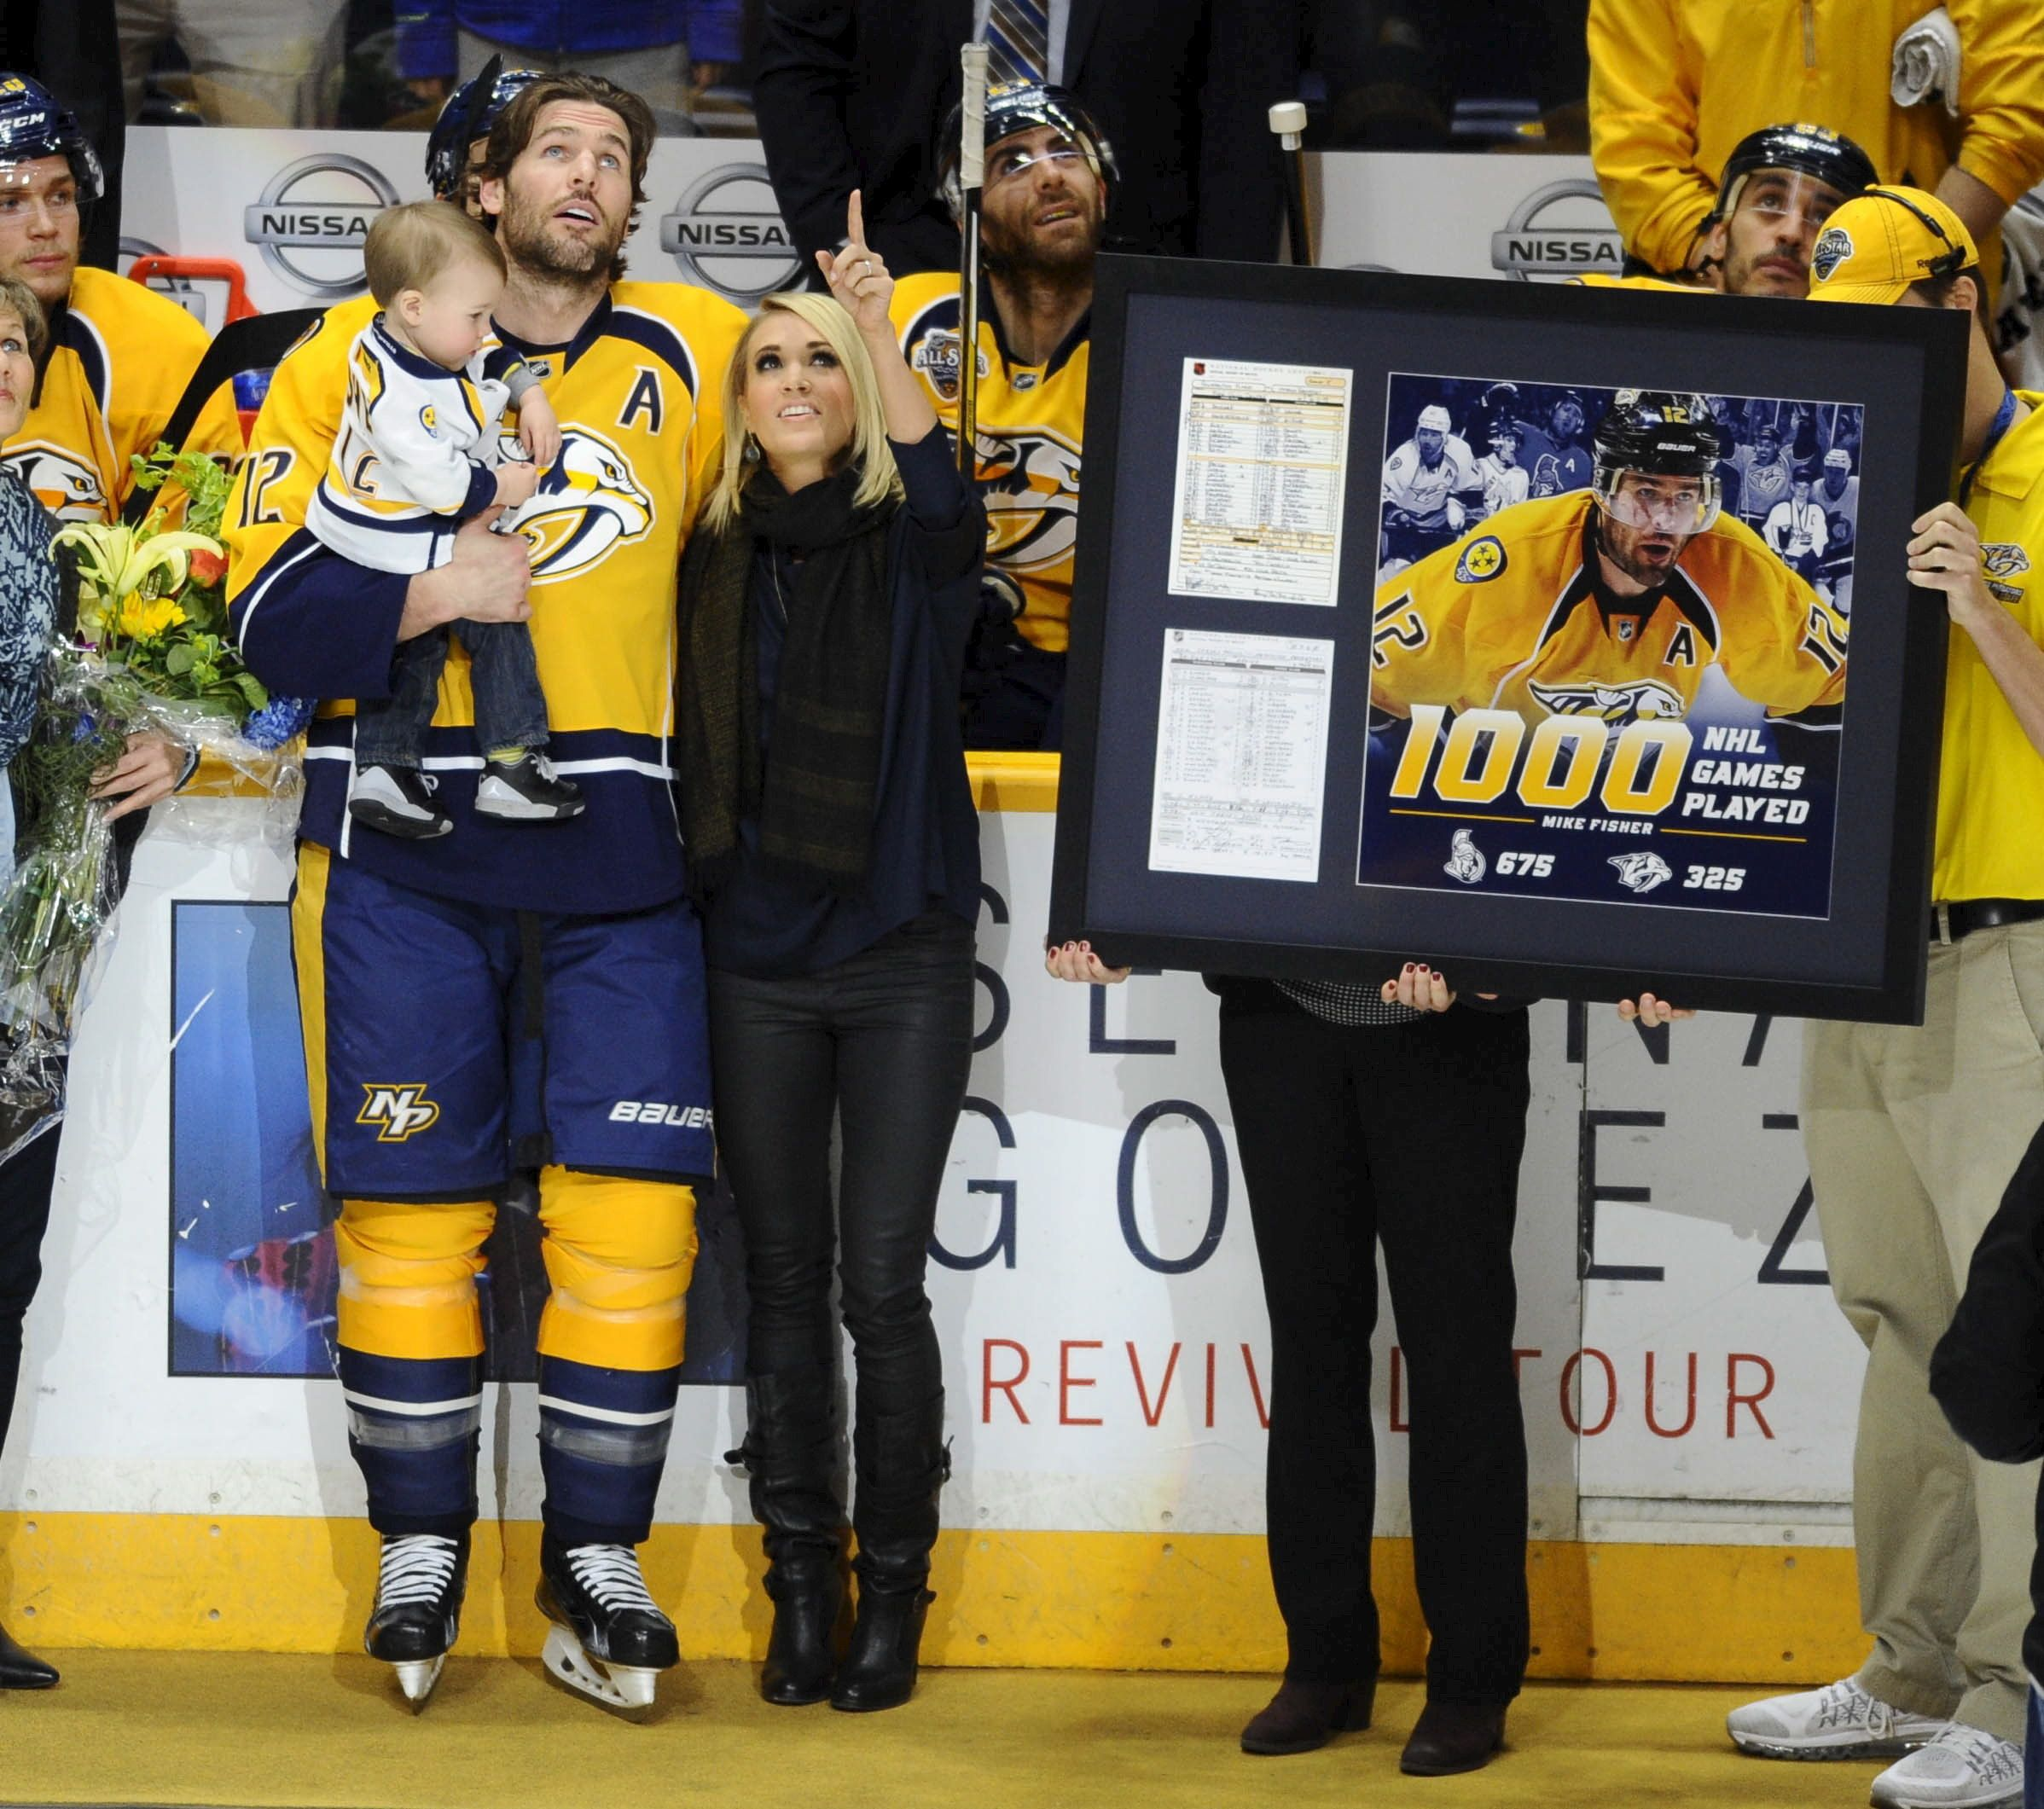 Mar 21, 2016; Nashville, TN, USA; Nashville Predators center Mike Fisher (12) is recognized for his 1000 games played in the NHL with wife Carrie Underwood and son Isaiah at Bridgestone Arena. Mandatory Credit: Christopher Hanewinckel-USA TODAY Sports      TPX IMAGES OF THE DAY